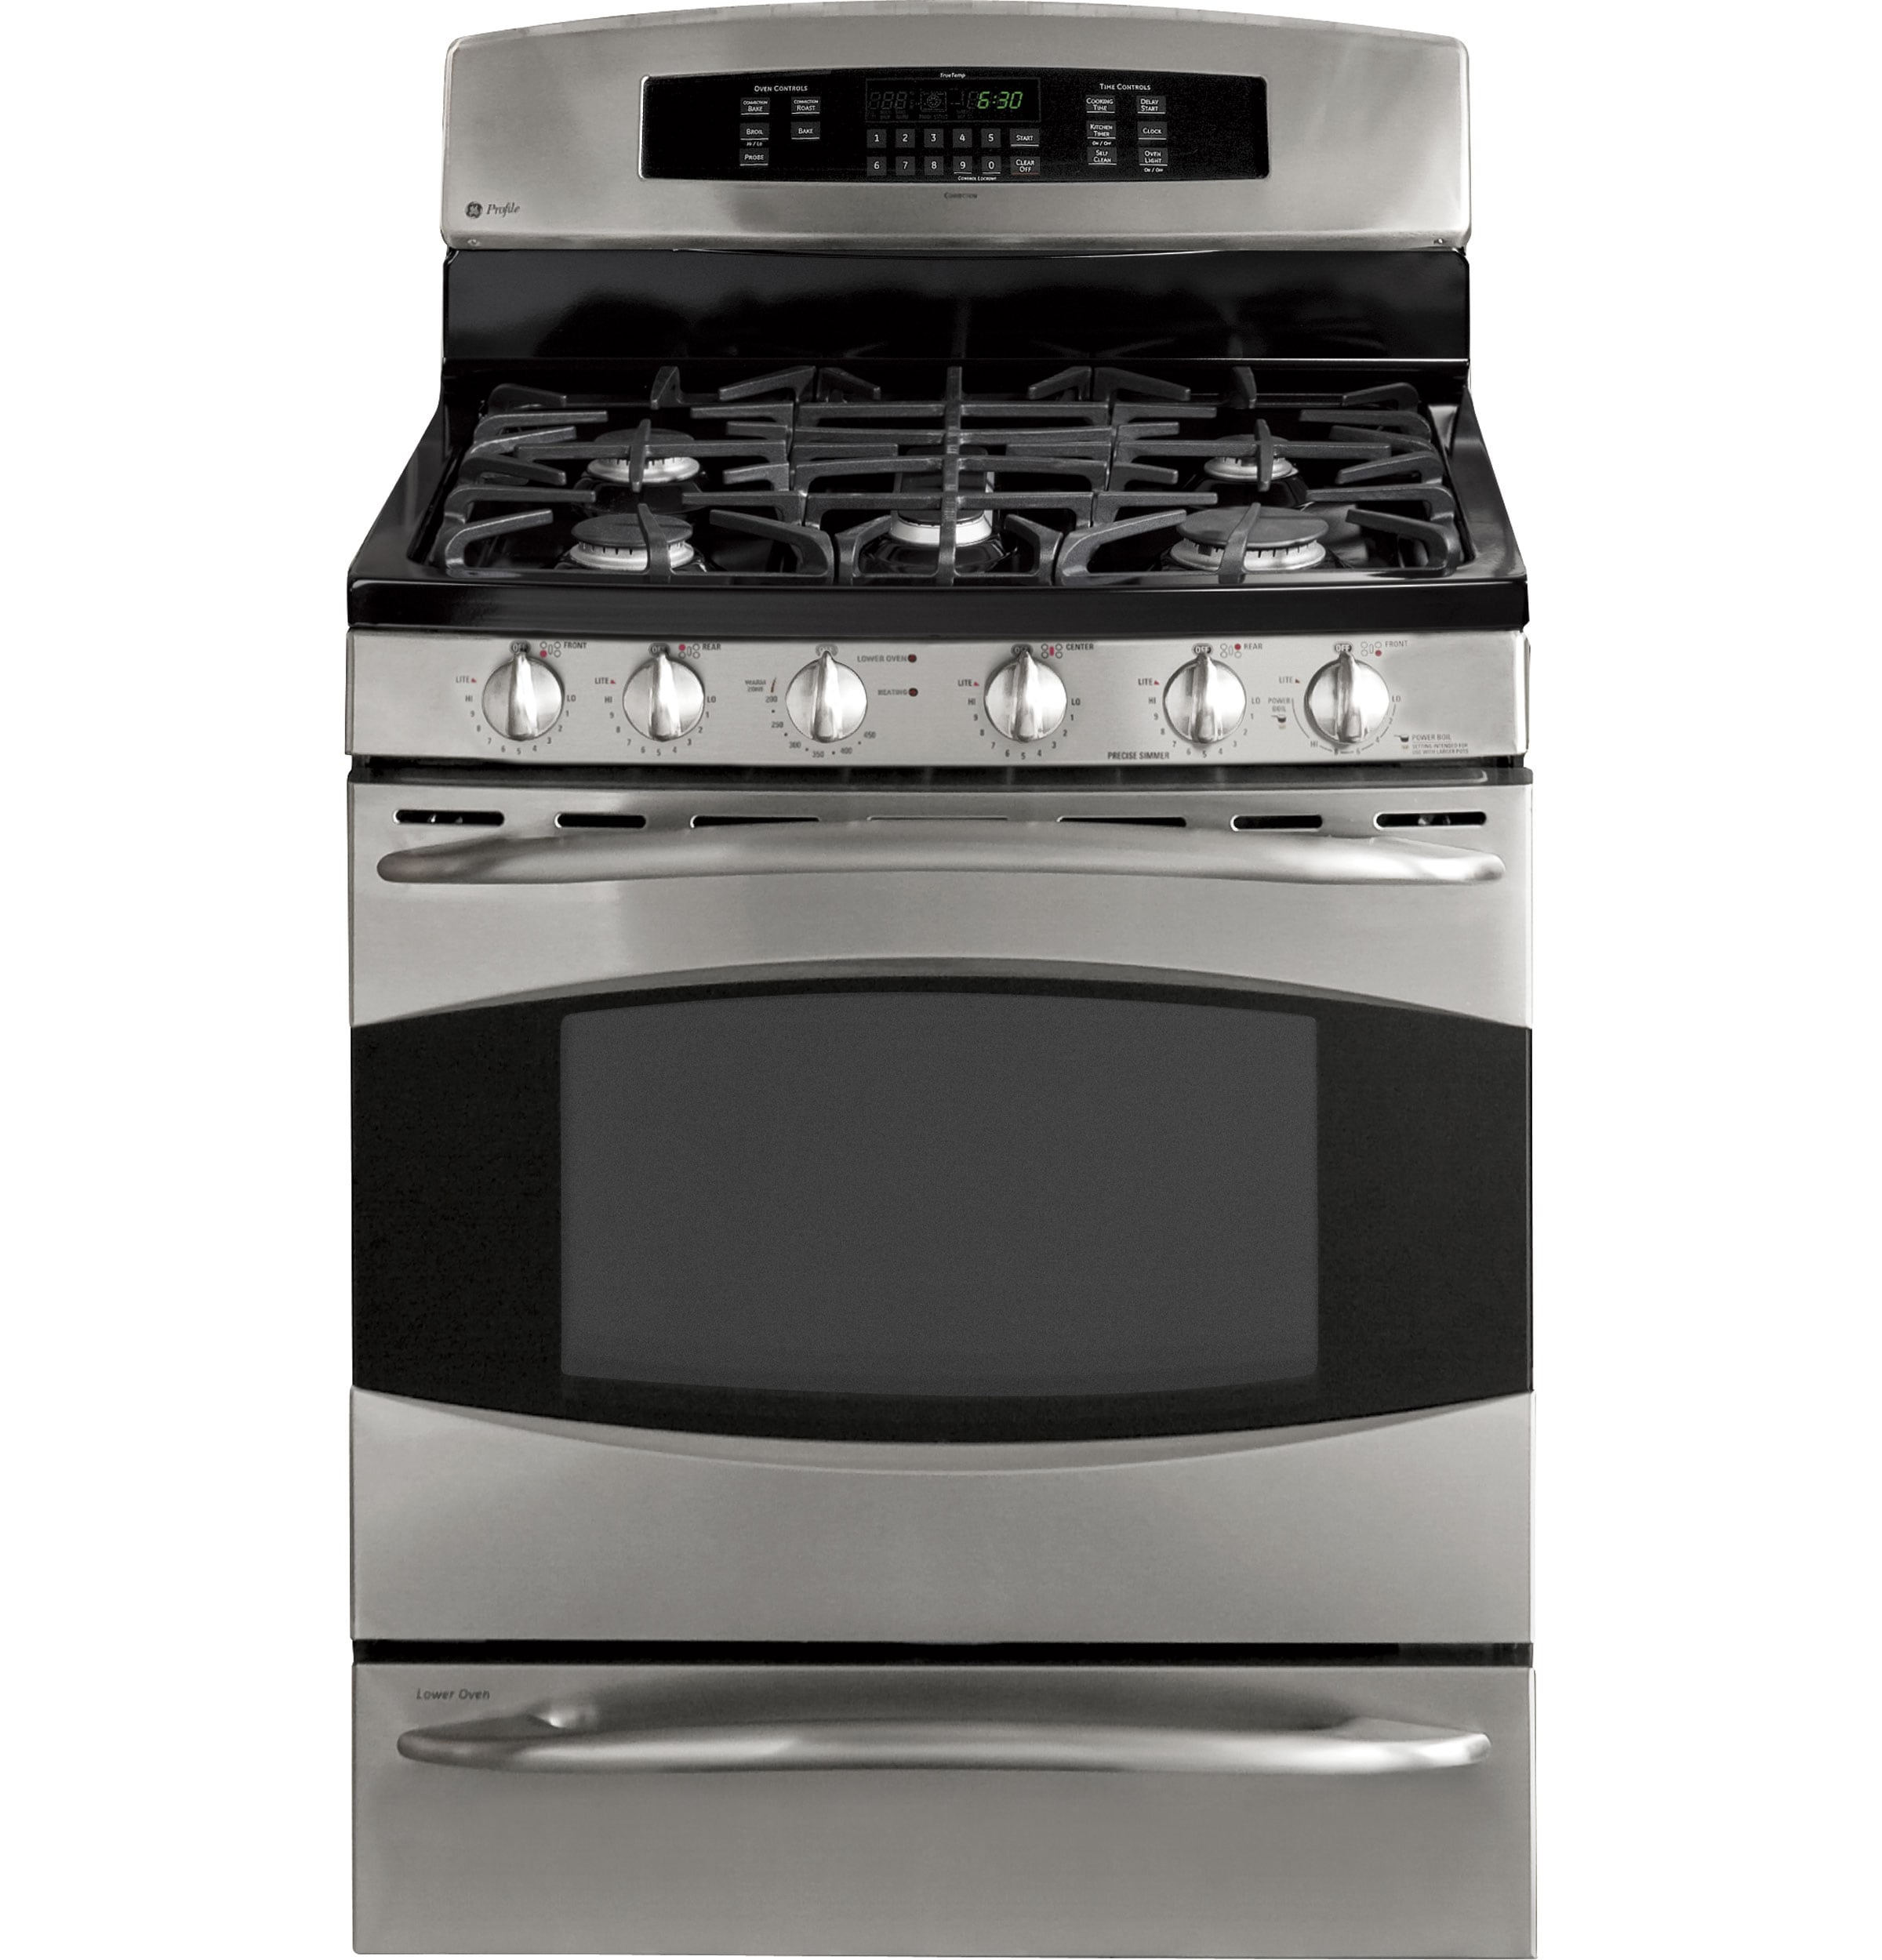 GE Profile 30-in 5 Burners Self-Cleaning Freestanding Double Oven Gas Range  (Stainless Steel) in the Double Oven Gas Ranges department at Lowes.com   Ge Profile Range Wiring Diagram      Lowe's